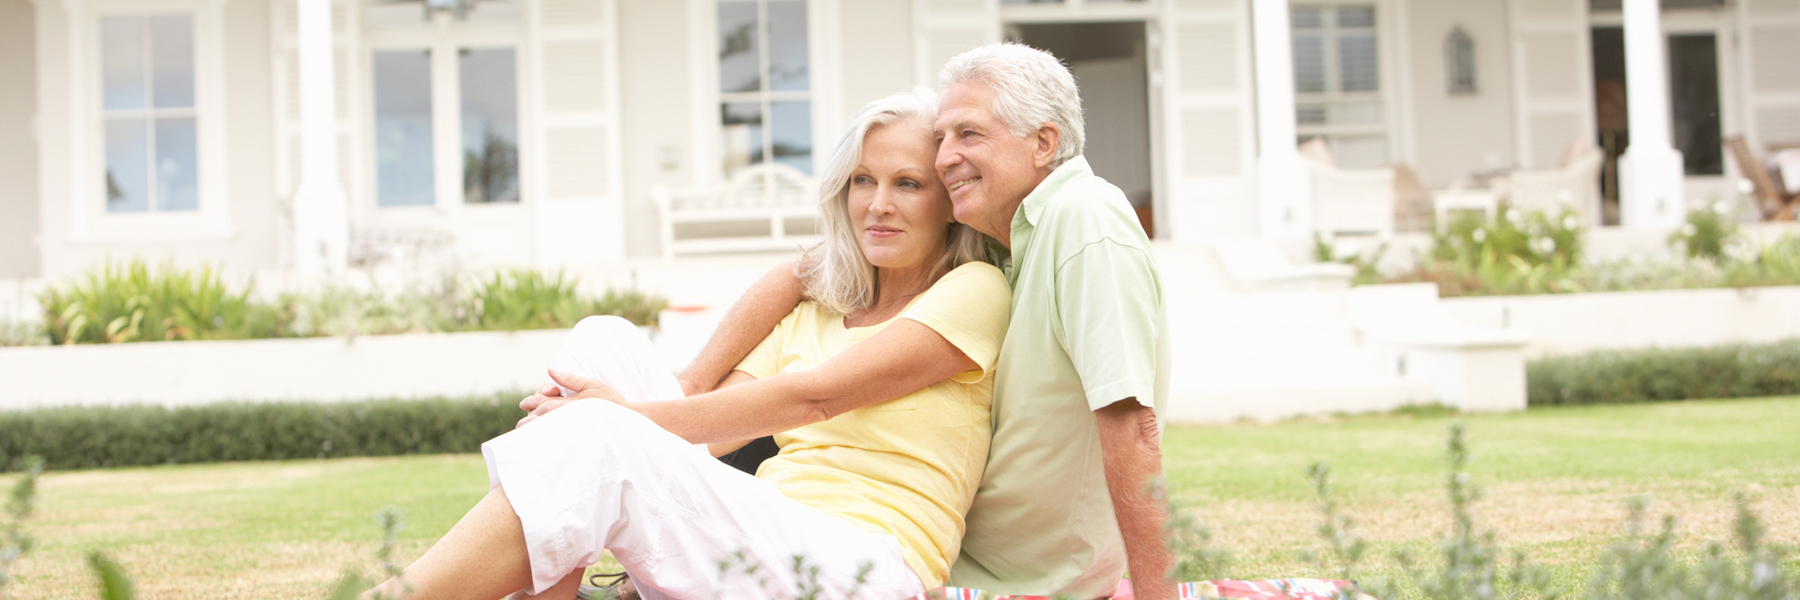 reverse mortgage for elderly couple